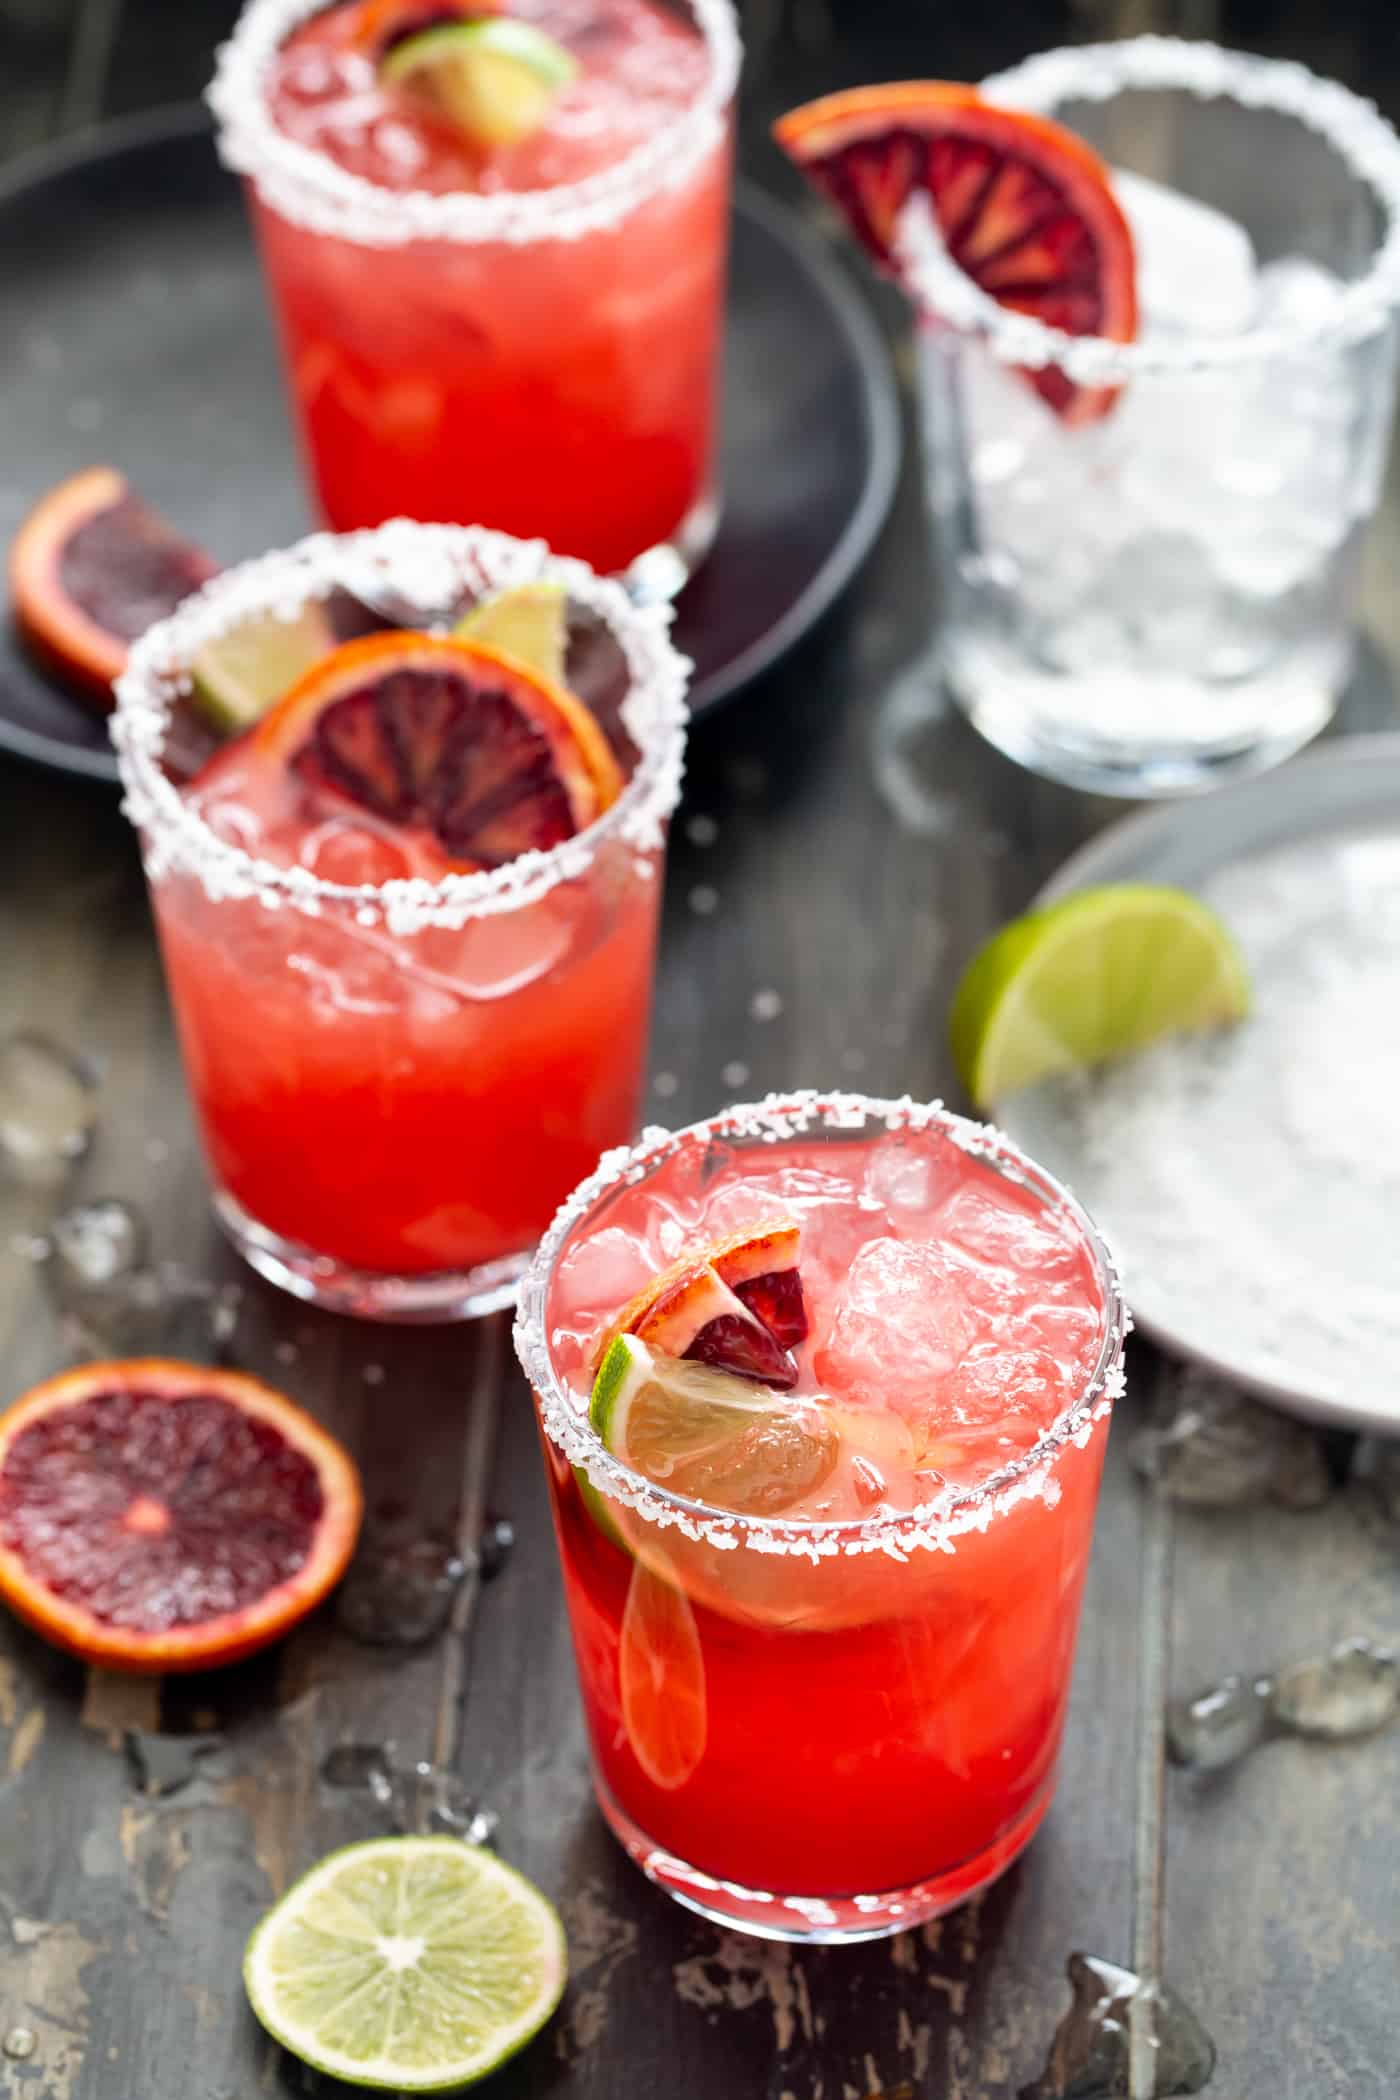 Glasses filled with Blood Orange Margaritas and garnished with fresh lime and blood orange slices. A gray plate filled with salt for the glass rims is nearby.